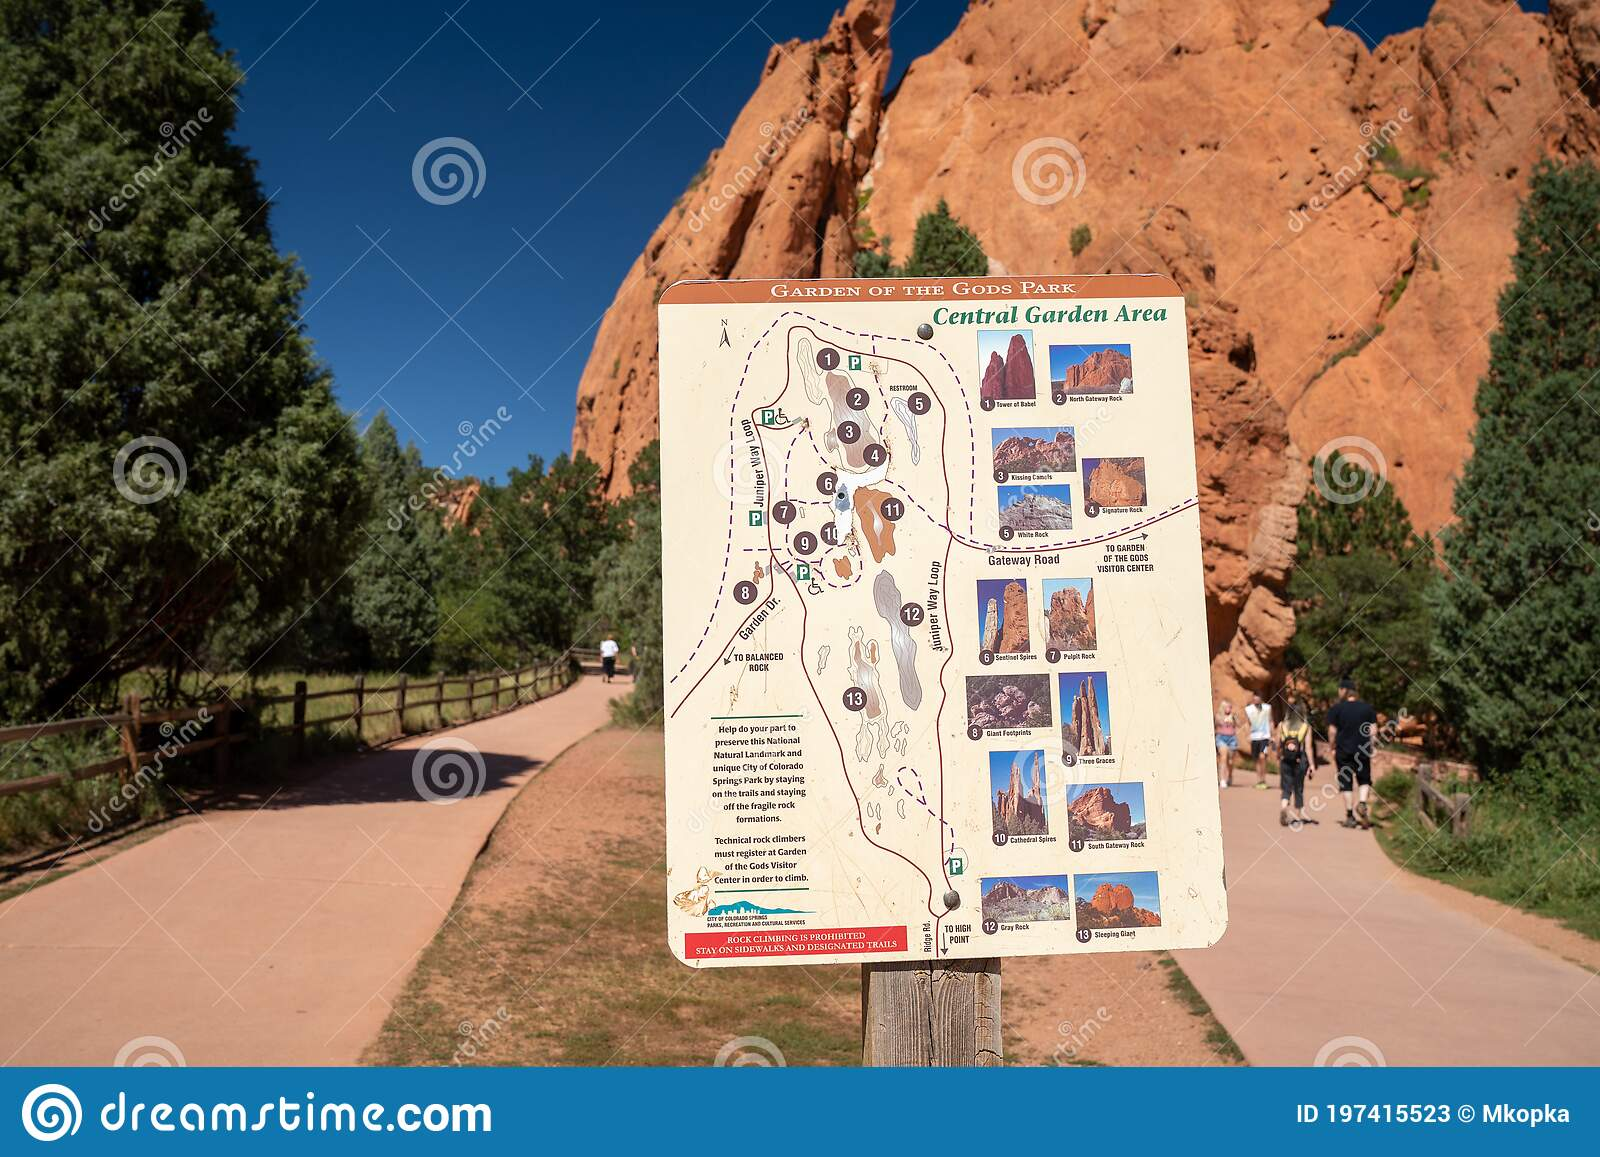 Colorado Springs Colorado September 14 2020 Hiking Trail Map Of Garden Of The Gods Park Of The Central Garden Area Editorial Stock Photo Image Of Geology 2020 197415523